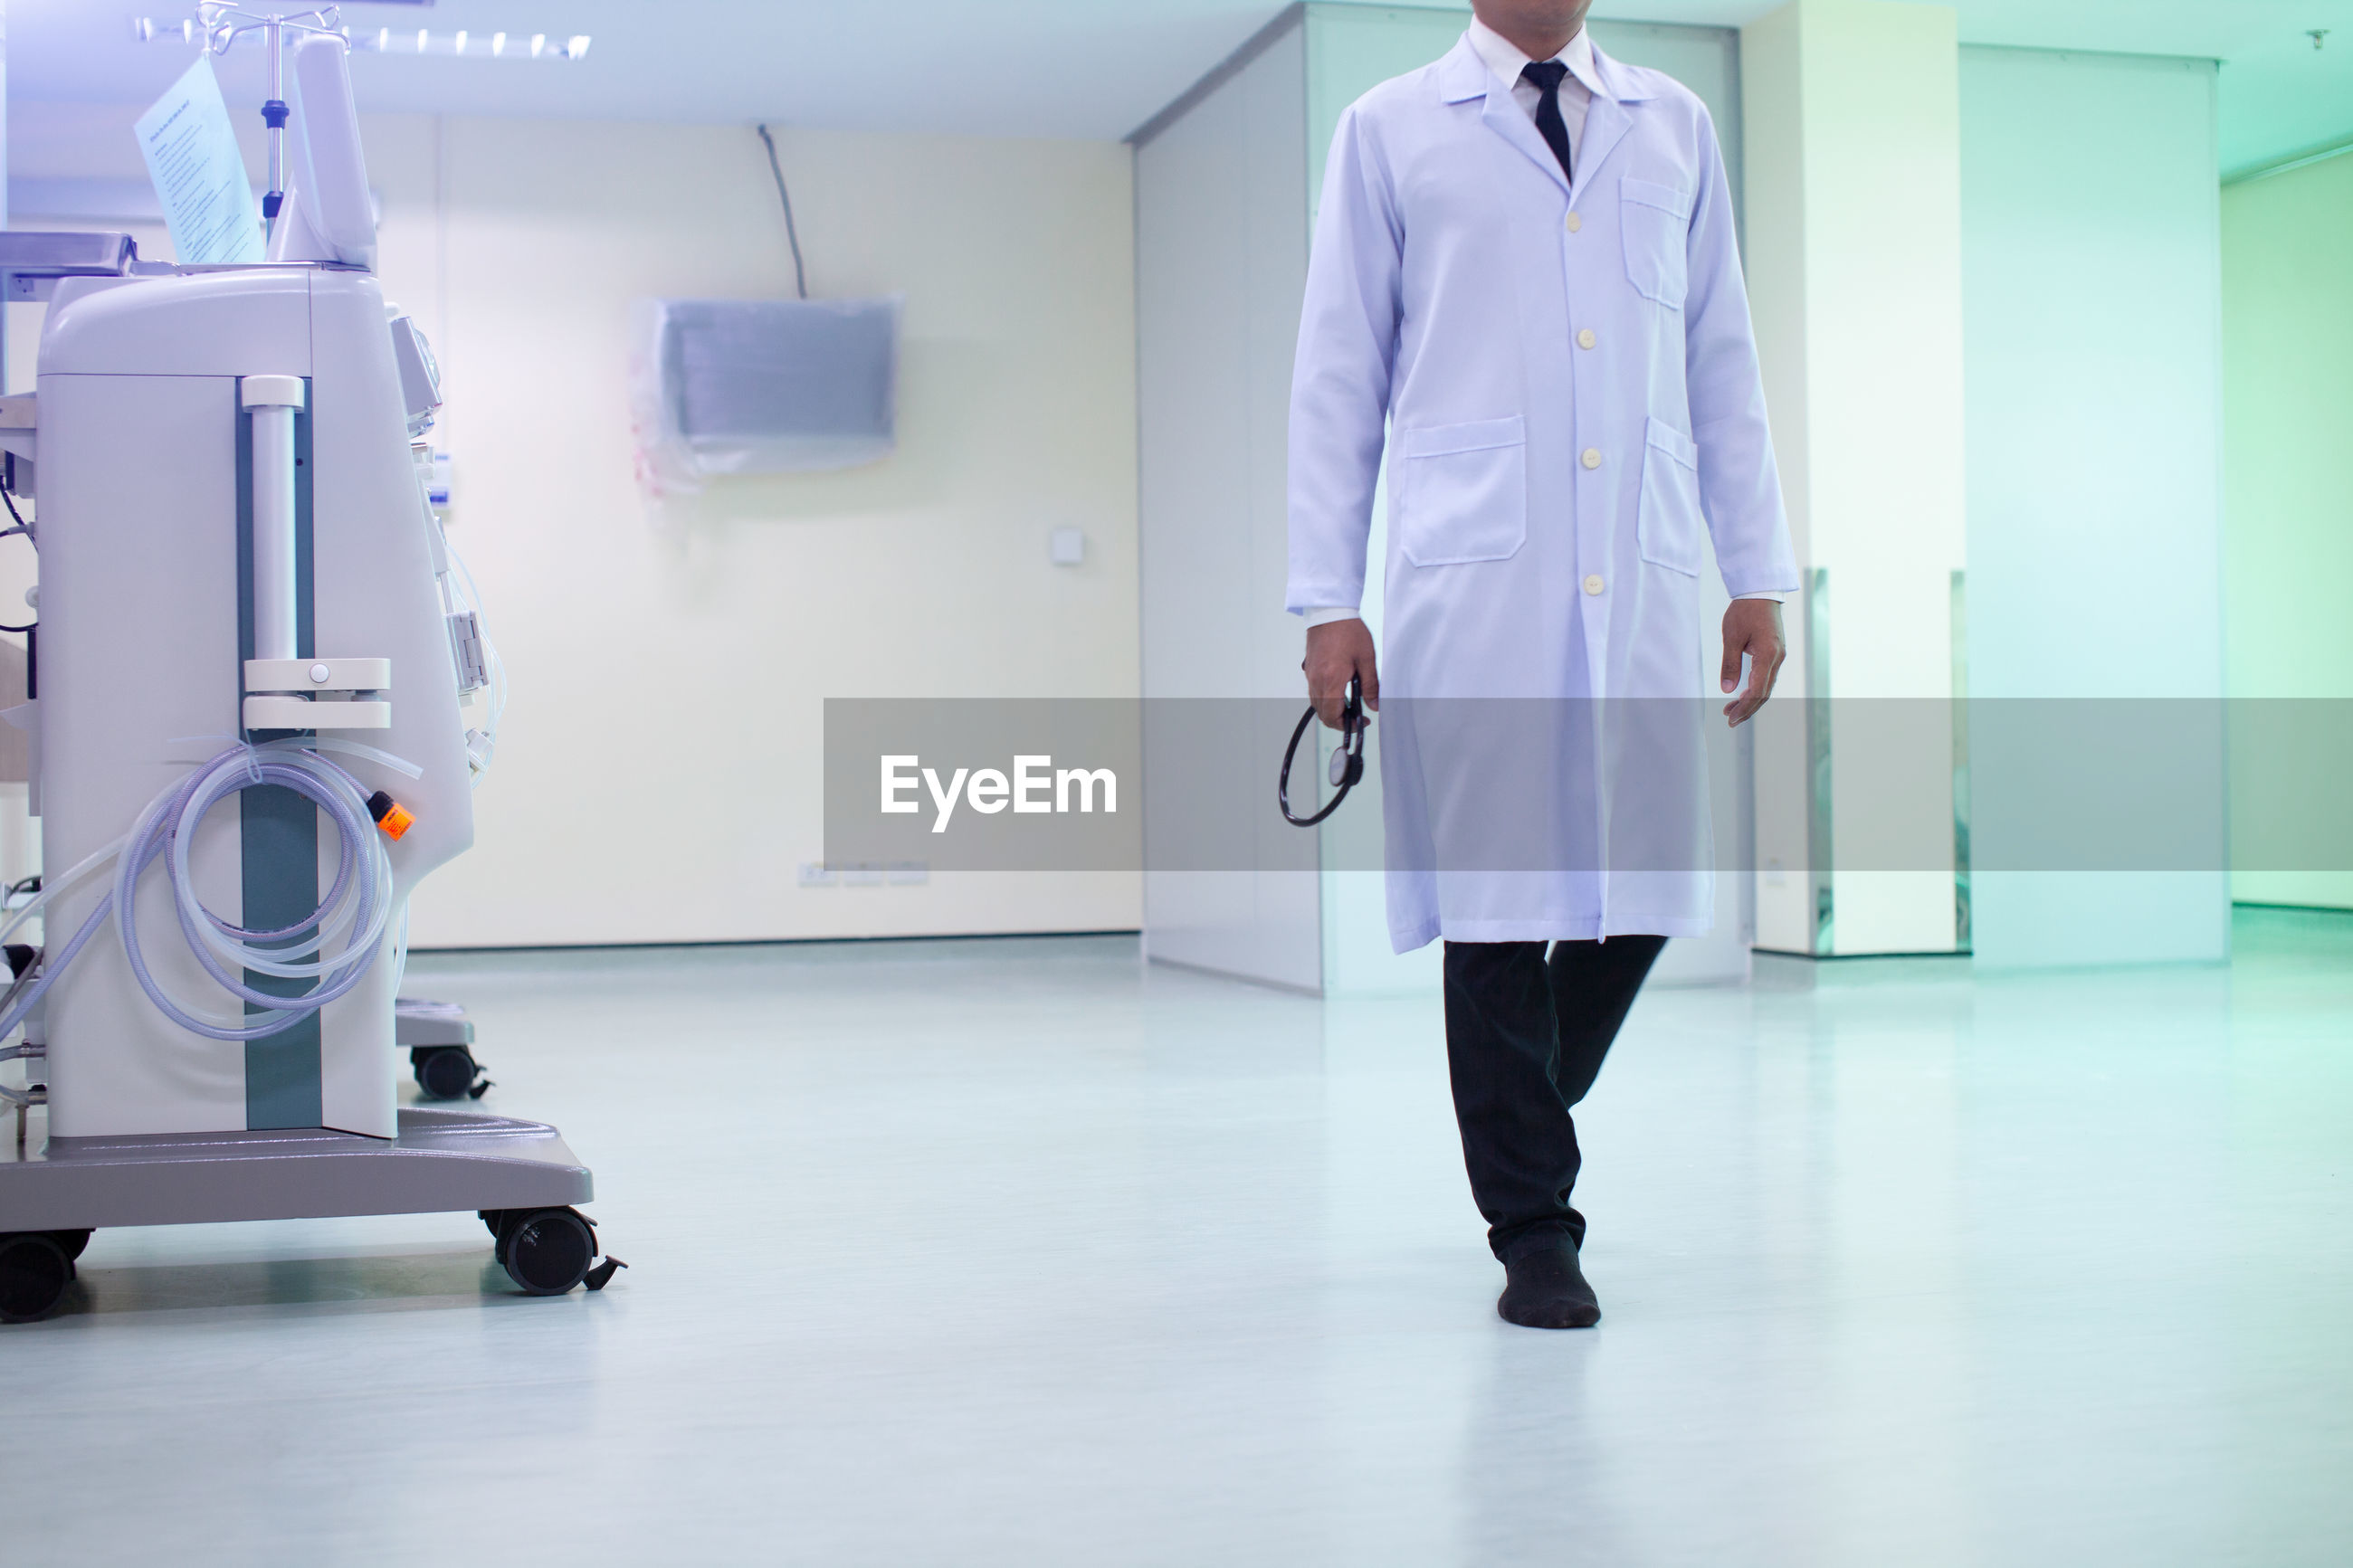 Low section of doctor walking on floor in hospital